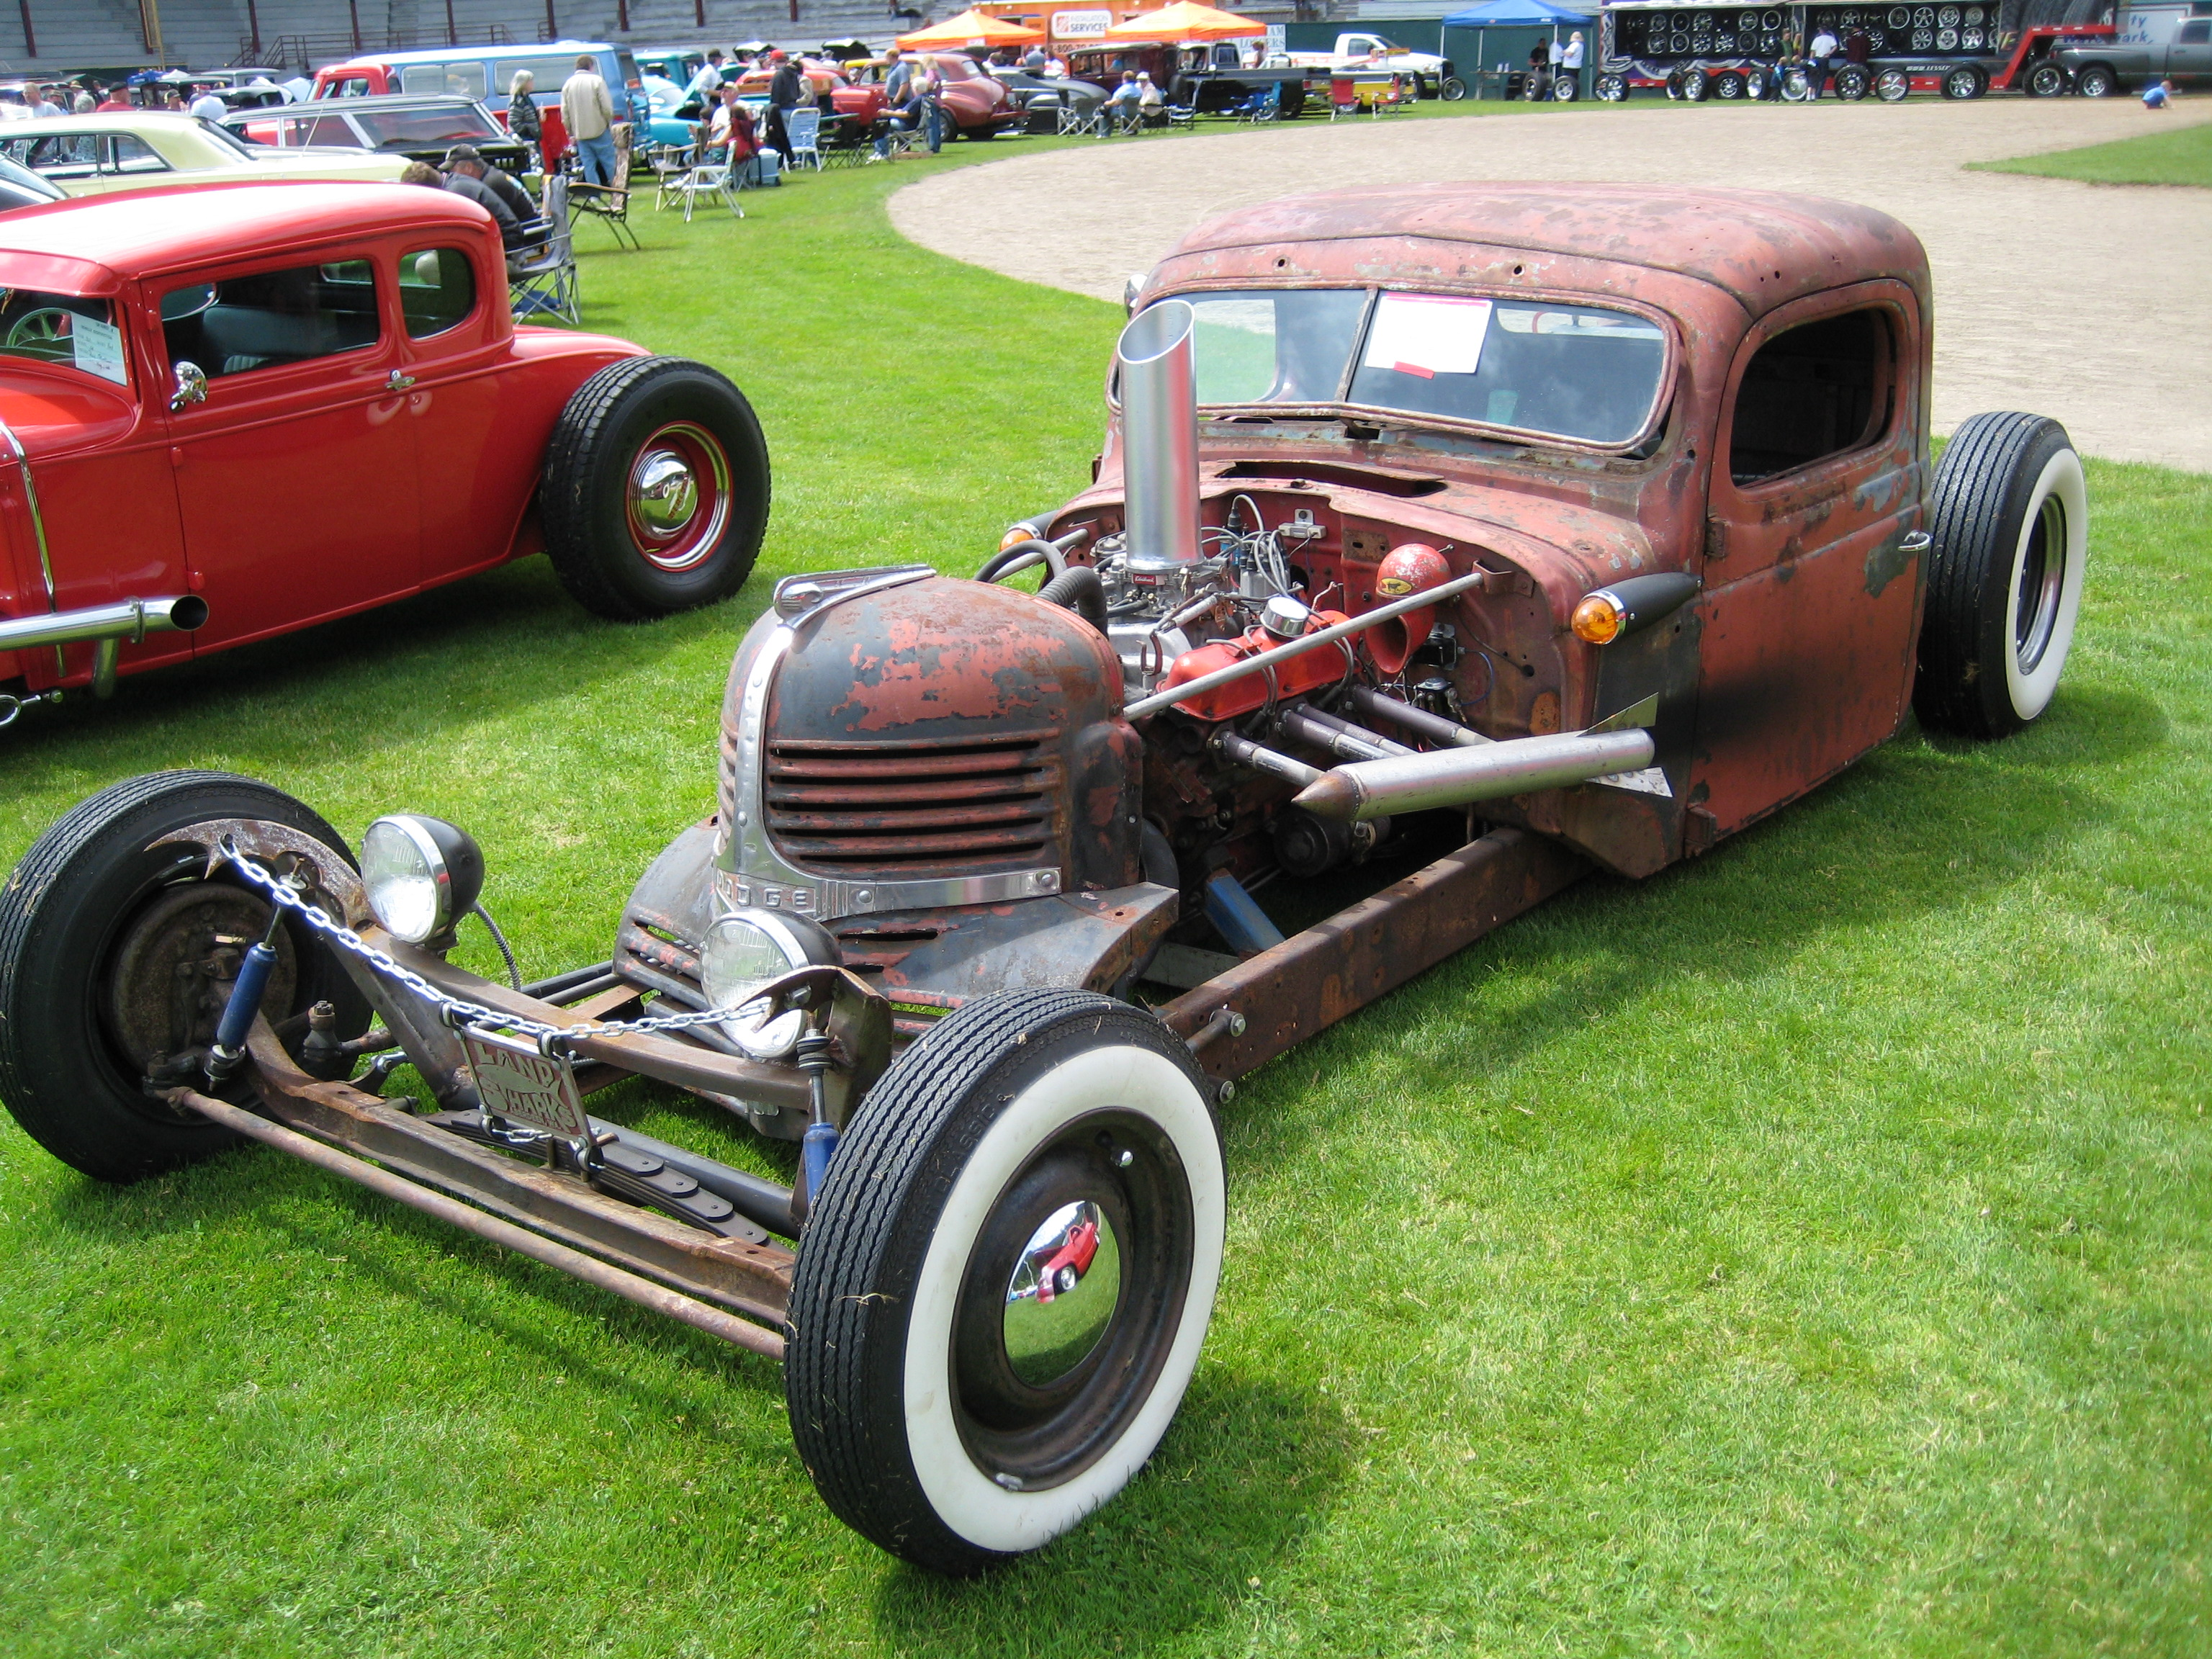 Rat Rod Car Show http://commons.wikimedia.org/wiki/File:Rat_Rod_Dodge.jpg